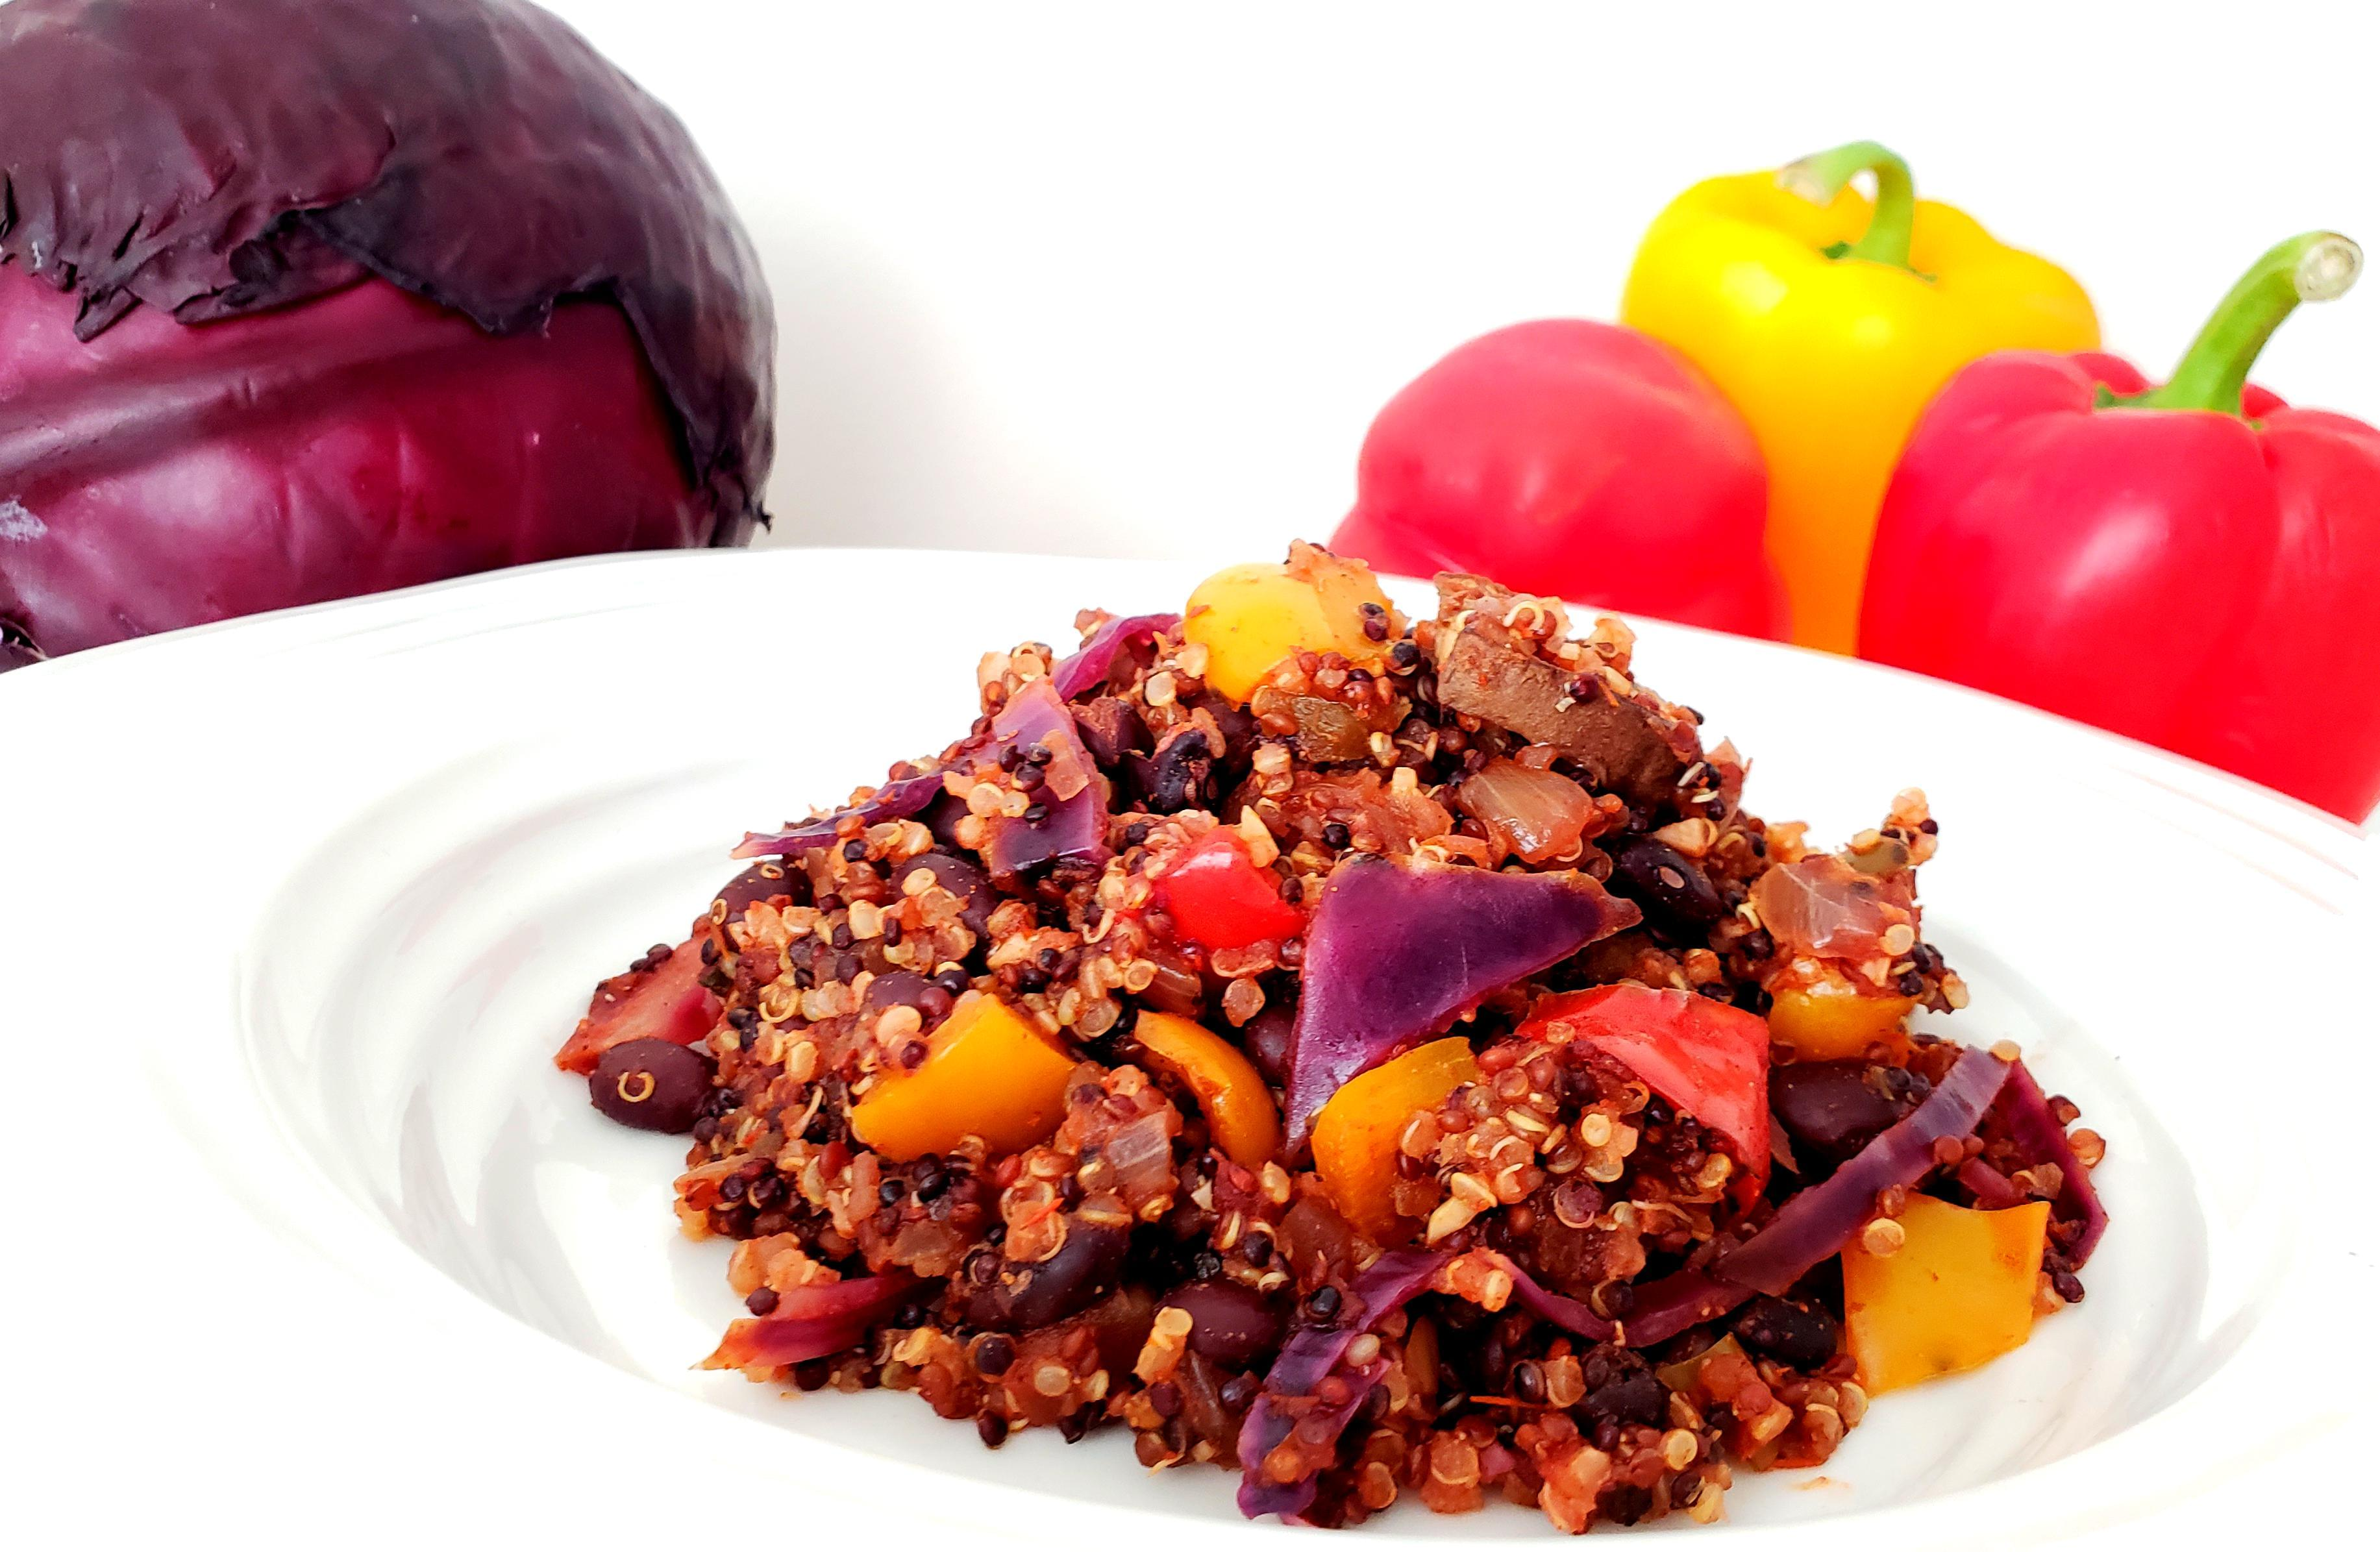 Cooked Mexican Quinoa with Peppers, red cabbage, and Mushrooms in bowl